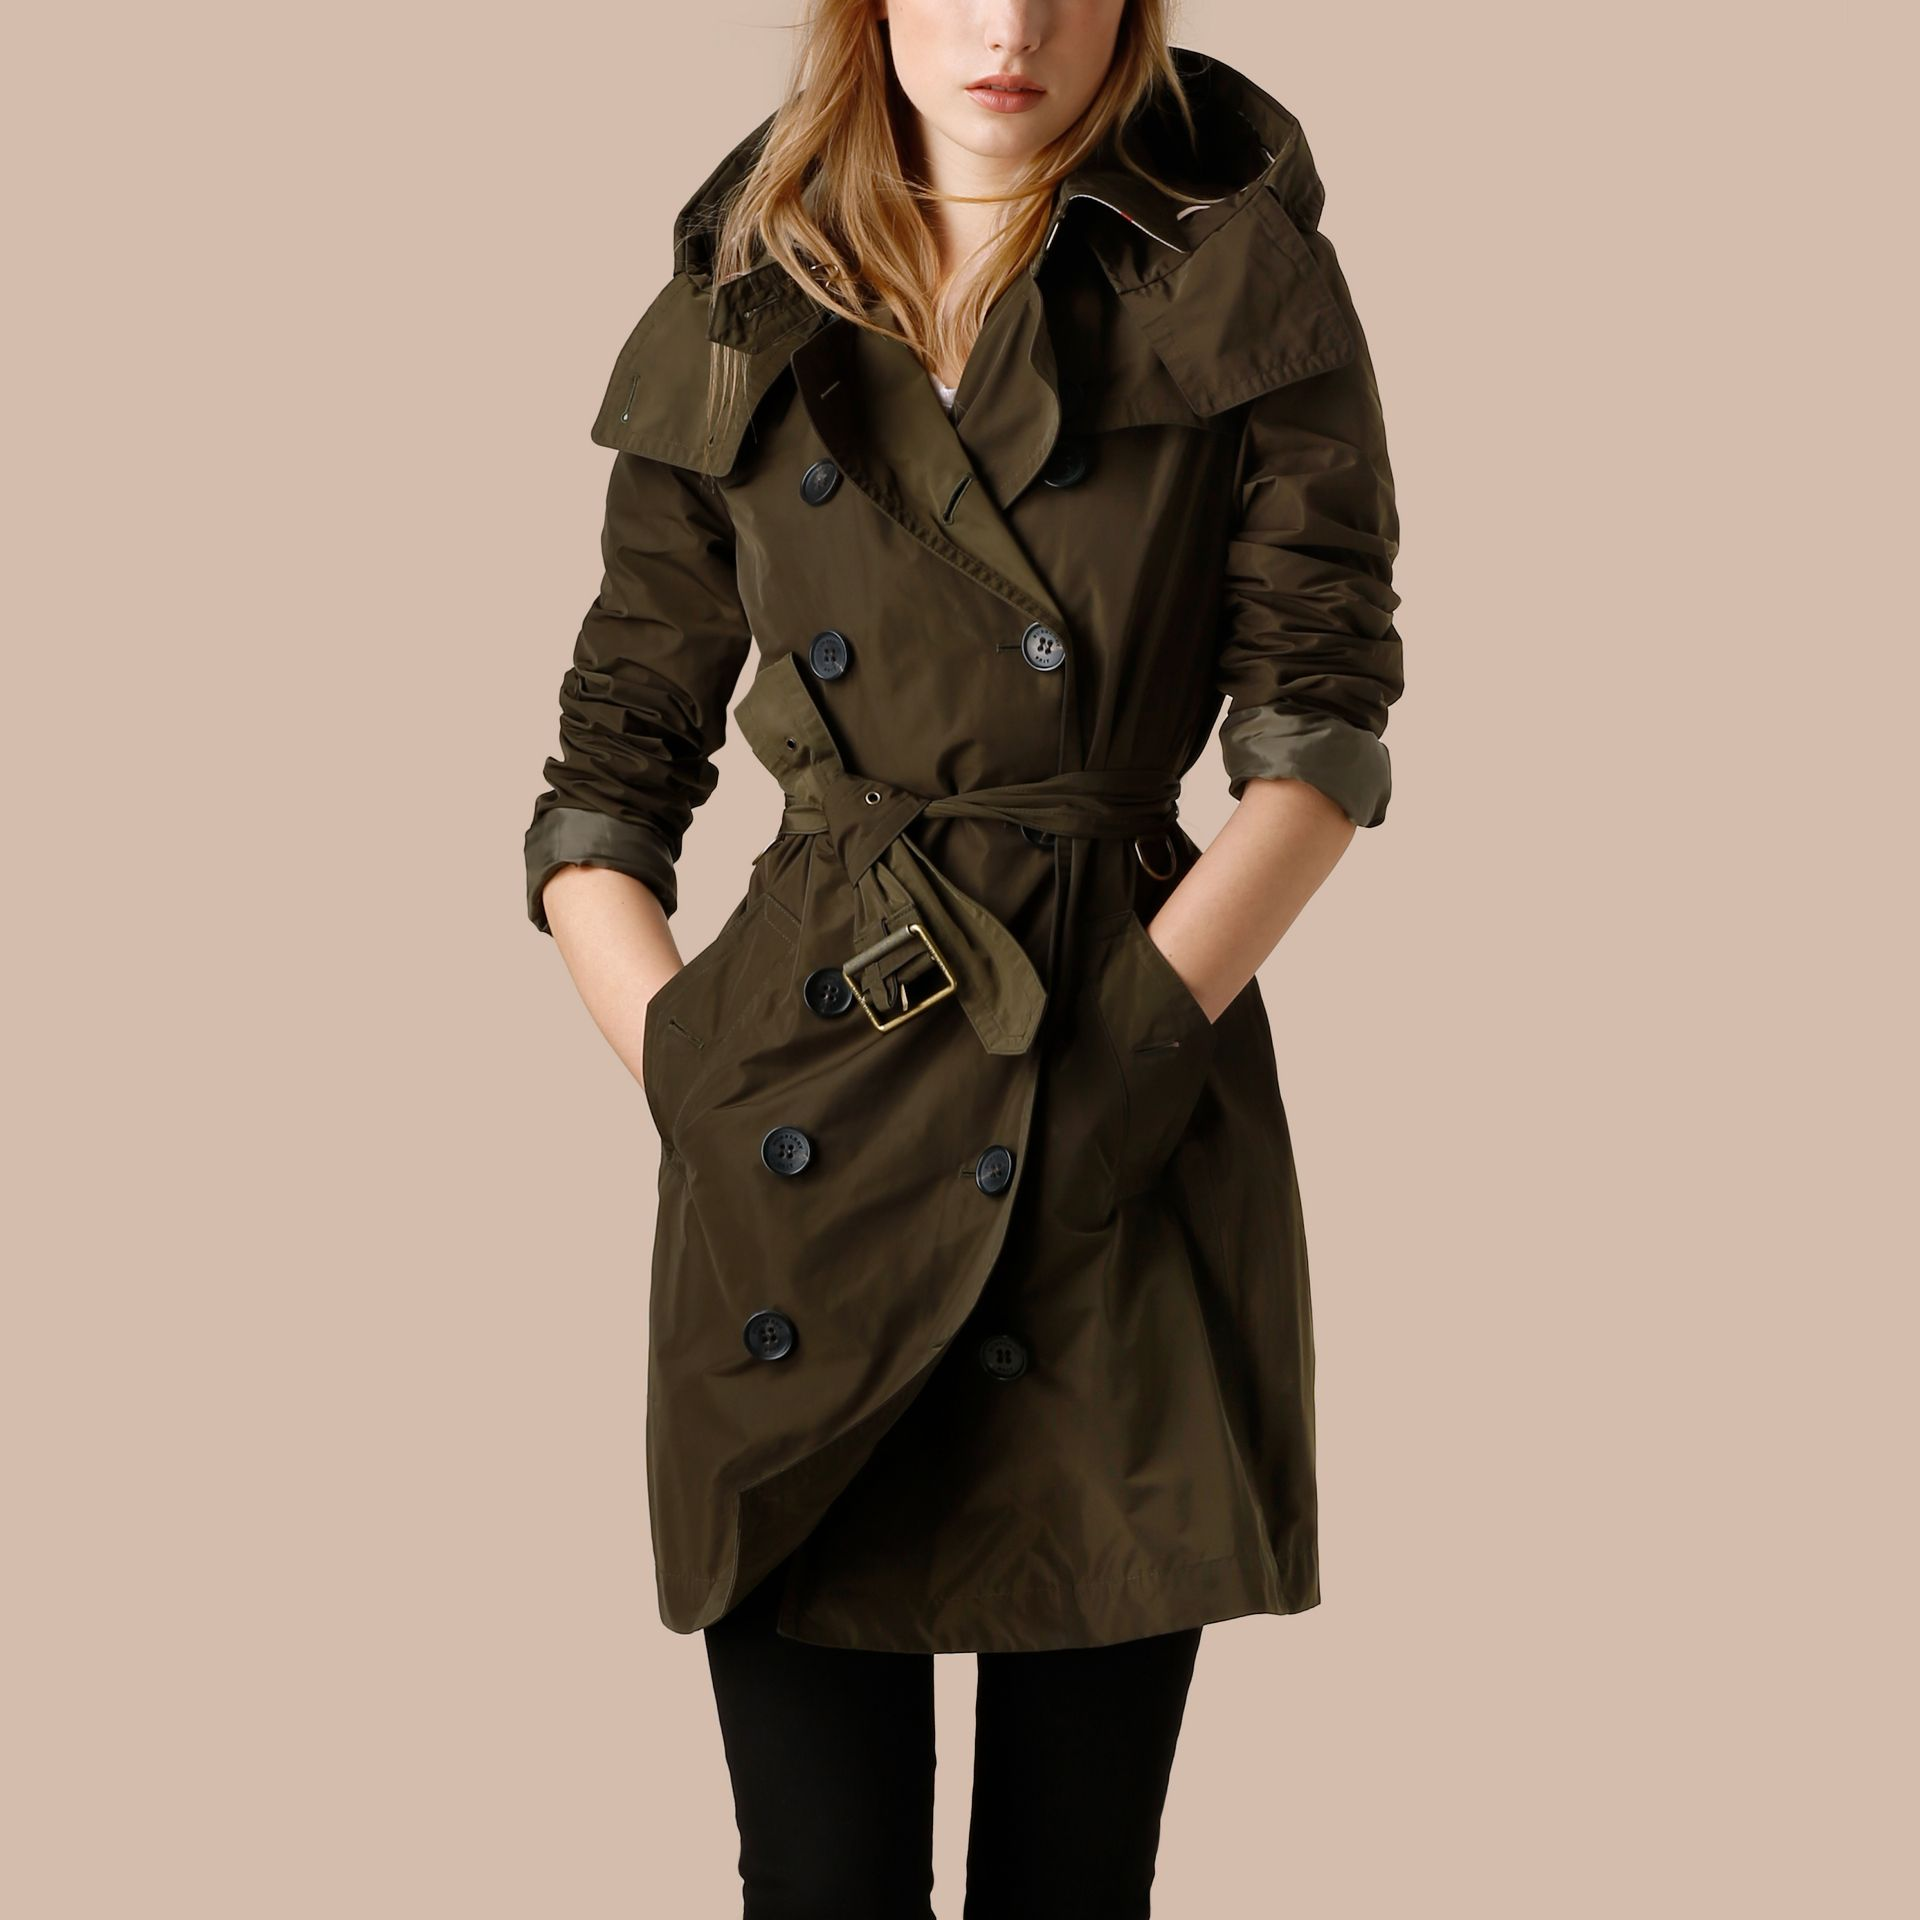 Dark olive Taffeta Trench Coat with Detachable Hood Dark Olive - immagine della galleria 4